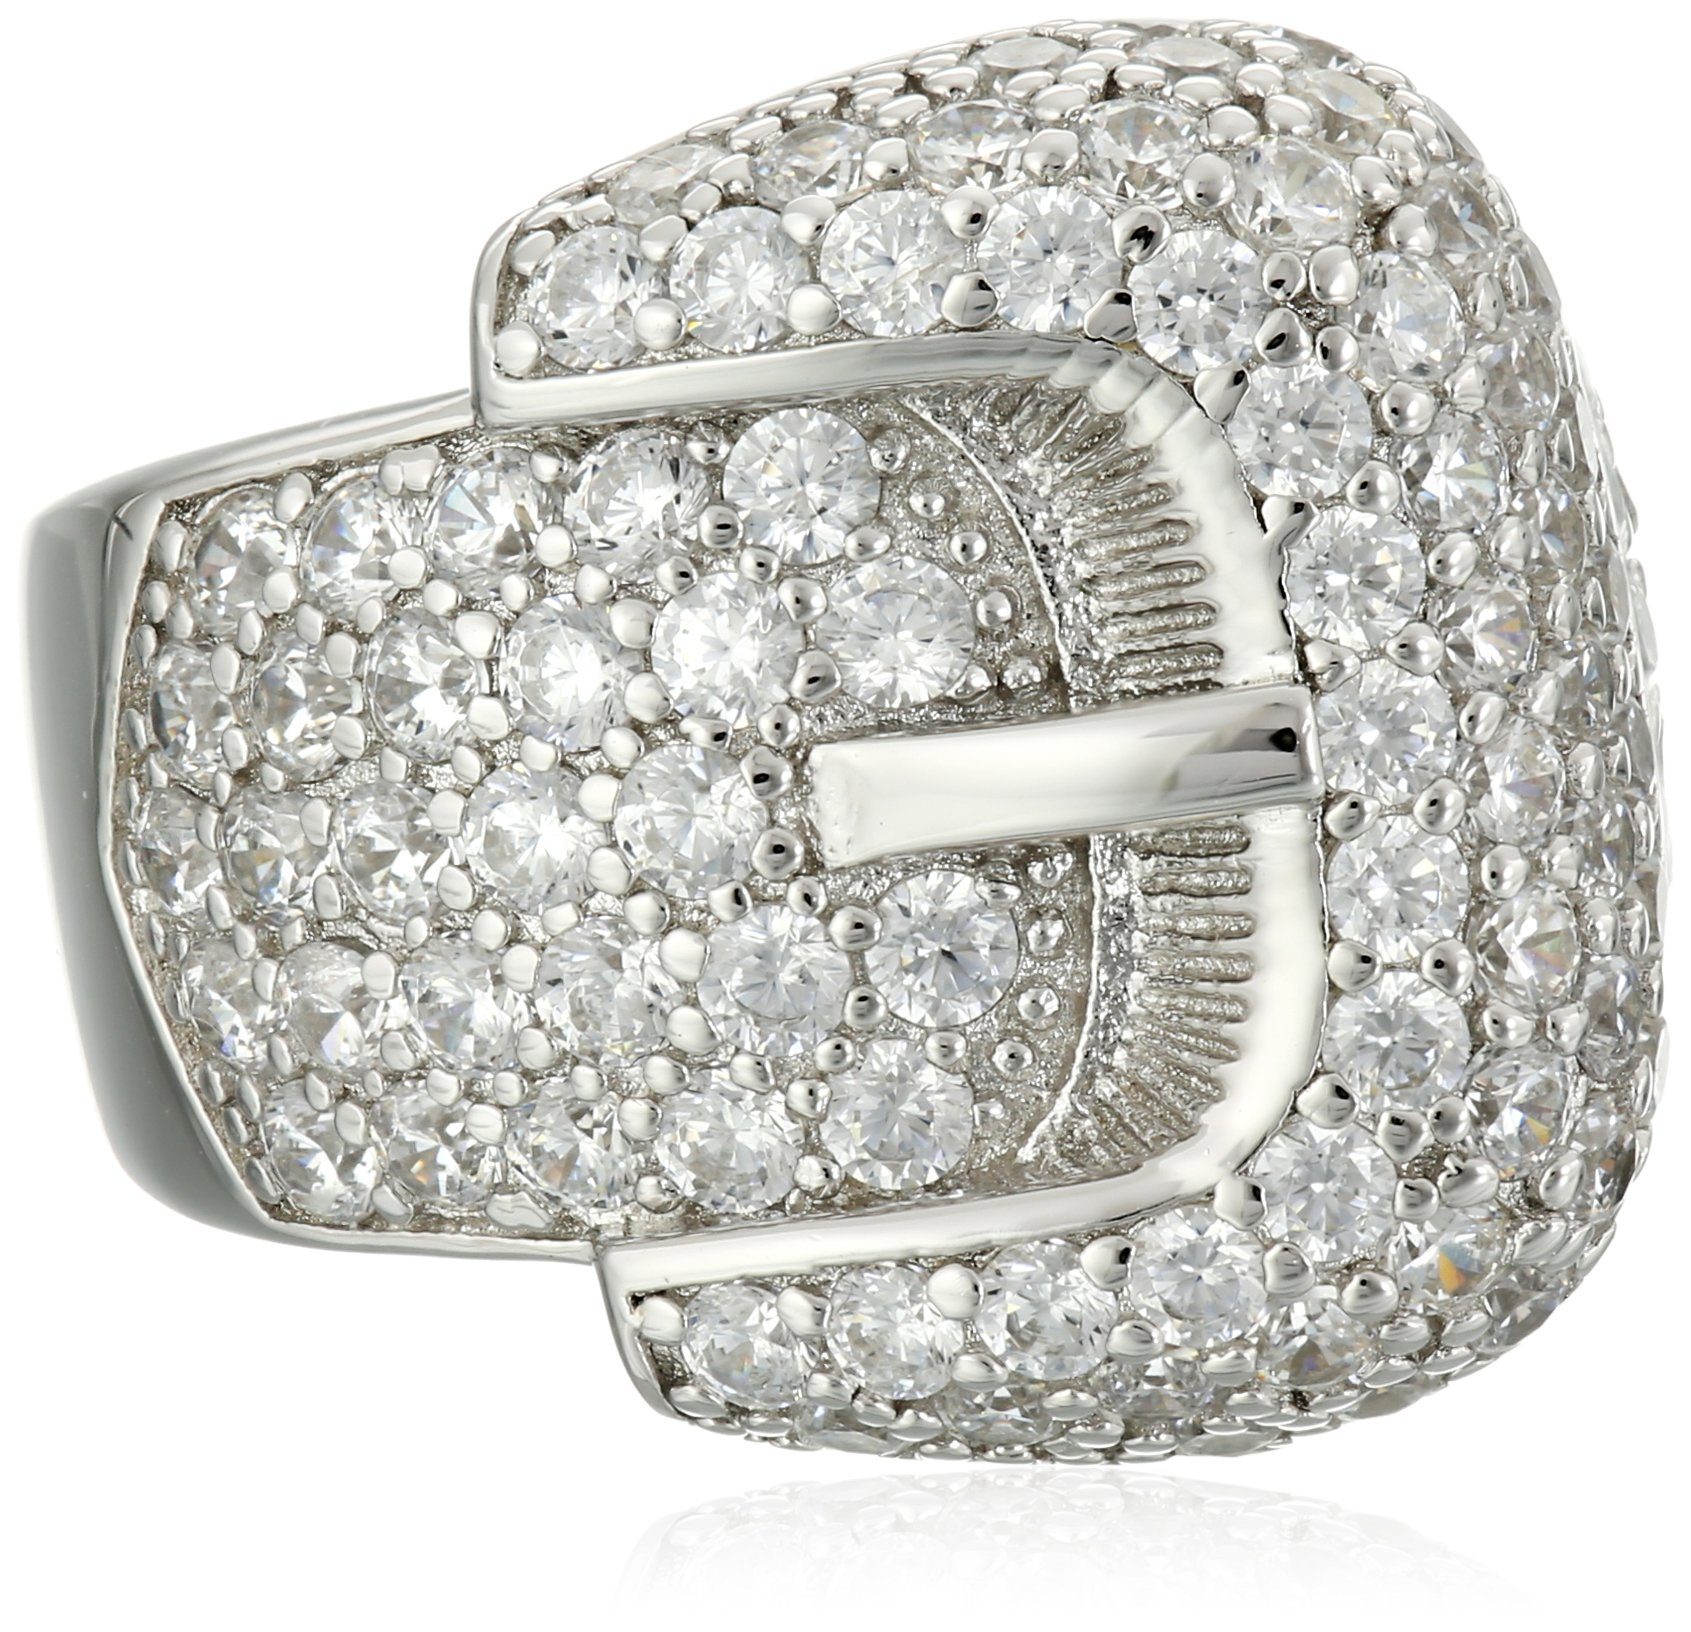 Charles Winston, Sterling Silver, Cubic Zirconia Award Winning Buckle Ring, 2.70 ct. tw., Size 7